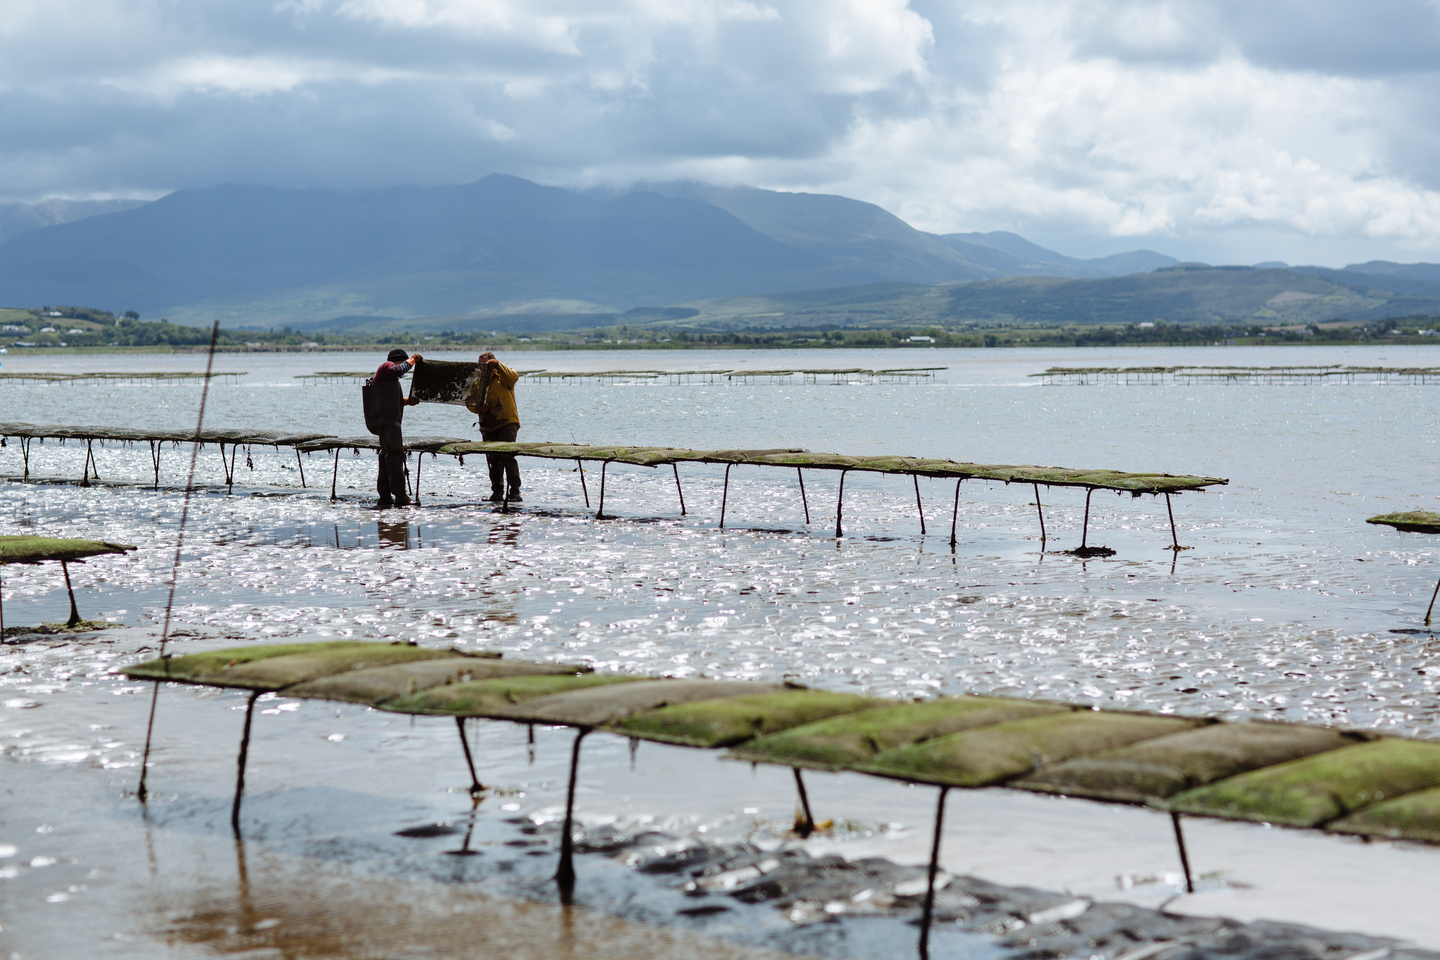 Cromane Bay Shellfish on oyster farm @edschofieldphoto